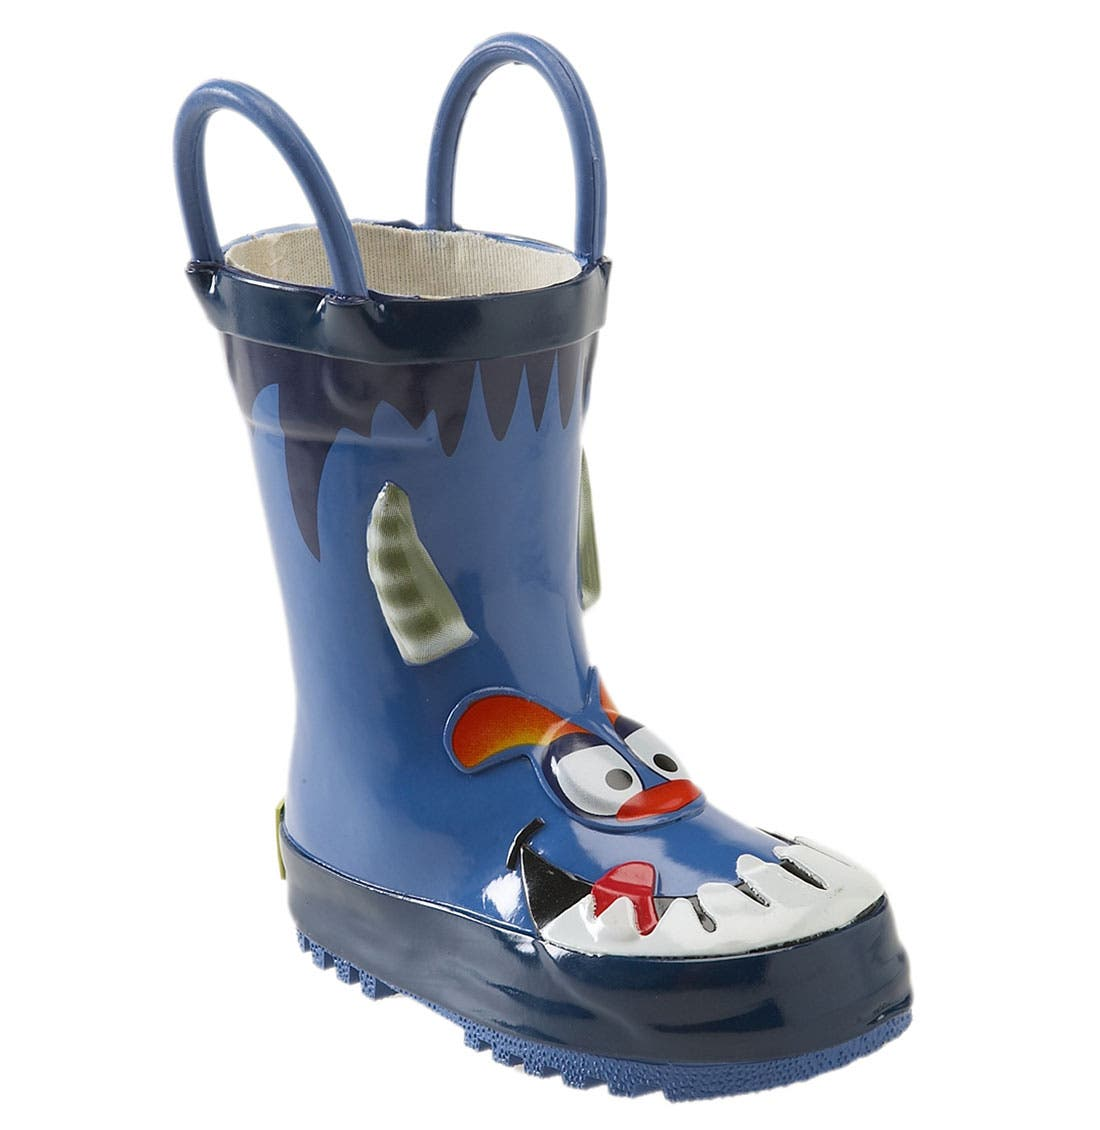 Alternate Image 1 Selected - Western Chief 'Monster' Rain Boot (Walker, Toddler, Little Kid & Big Kid)